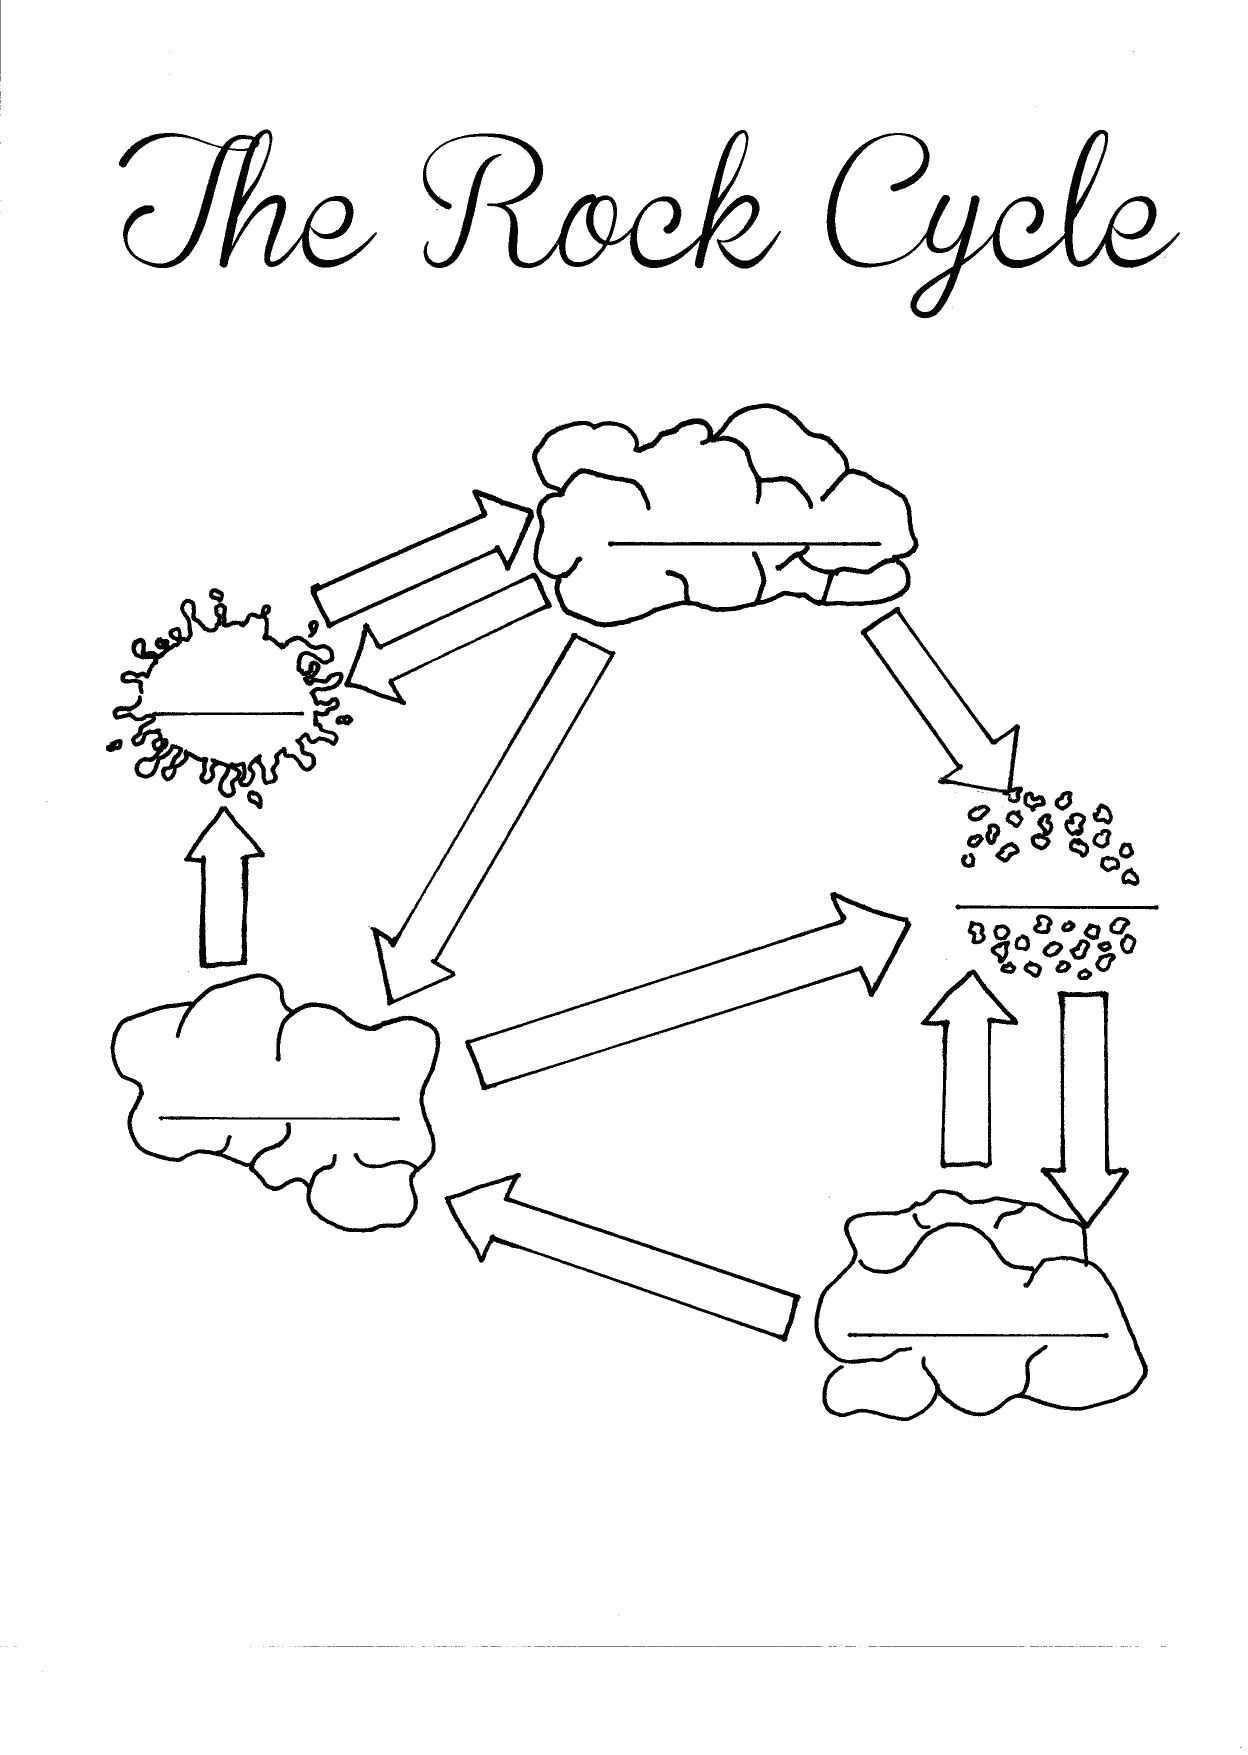 The rock cycle blank worksheet fill in as you talk about or go the rock cycle blank worksheet fill in as you talk about or go through the rock cycle using crayons ccuart Images